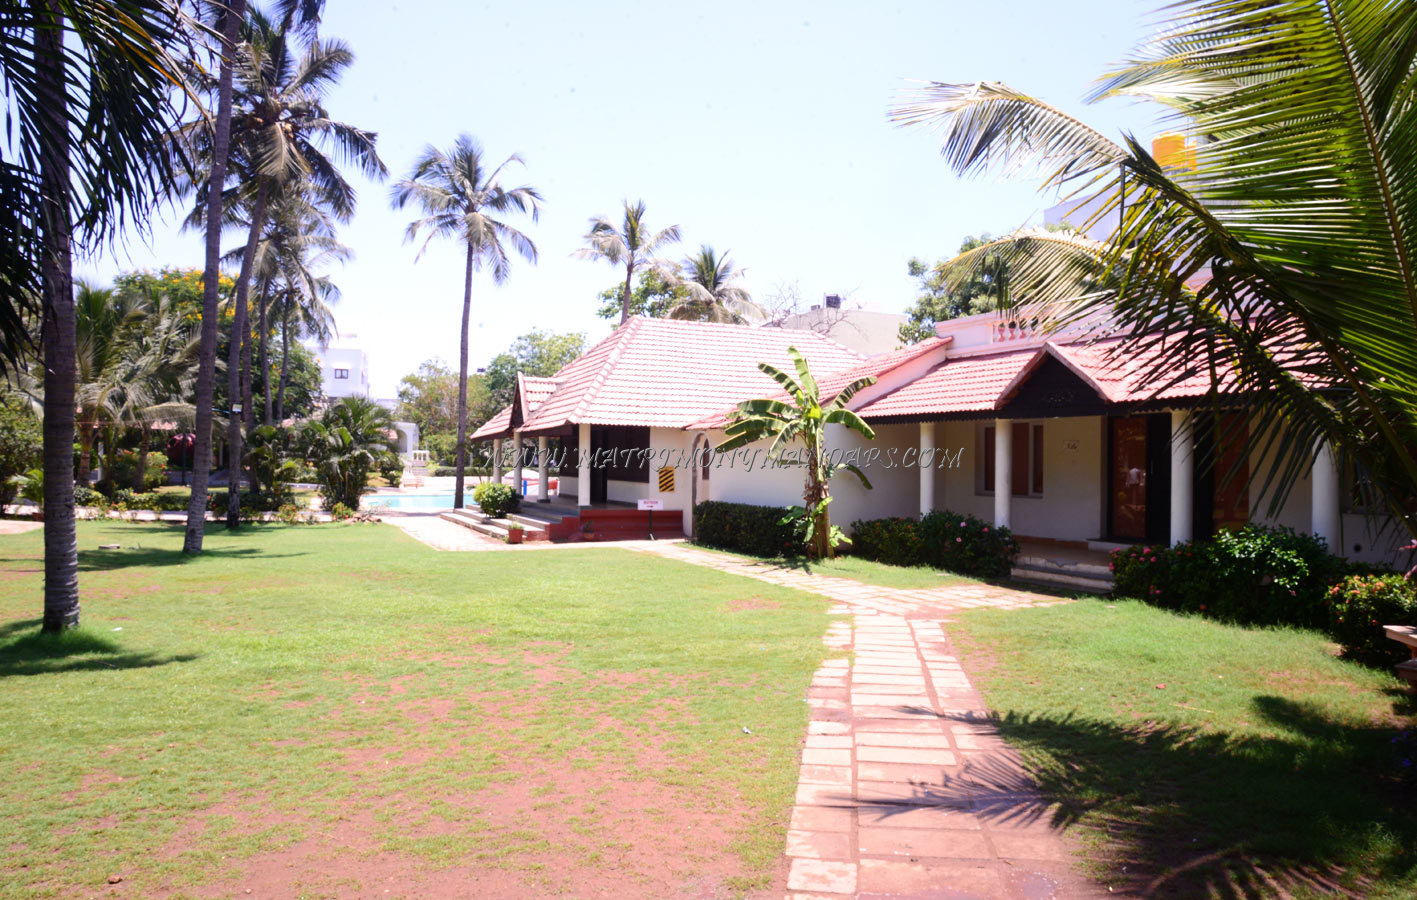 Find the availability of the Green Meadows Resort (A/C) in ECR, Chennai and avail special offers